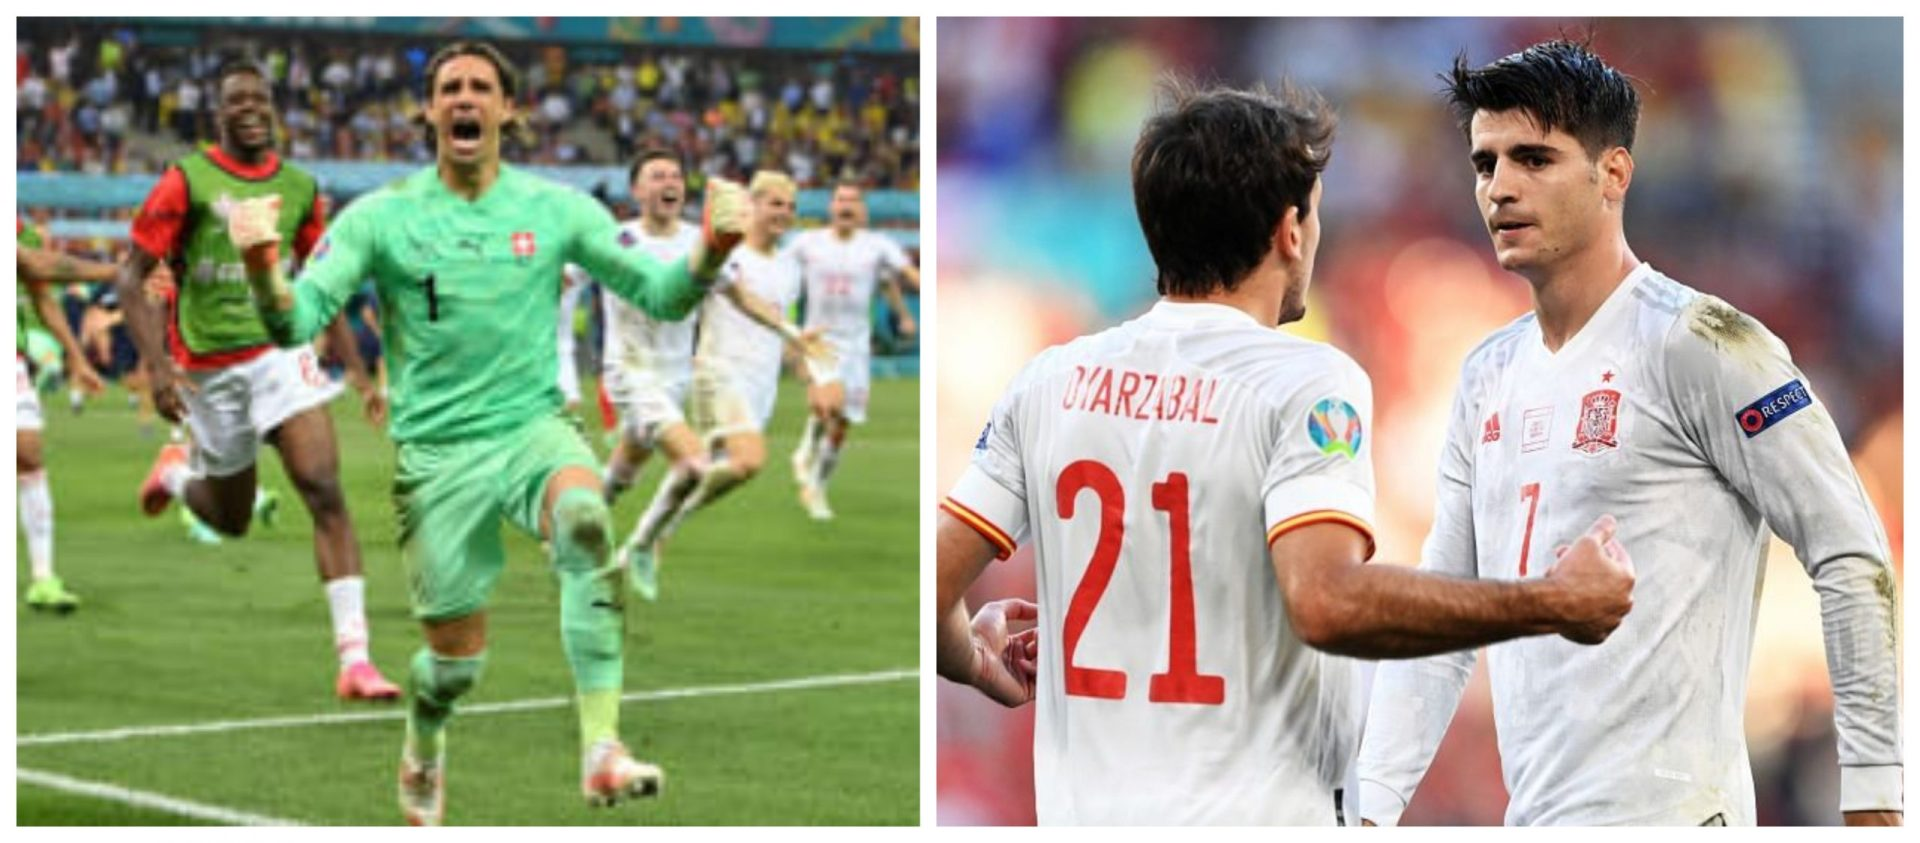 EURO 2020: Spain vs Switzerland QF 1 Odds, Predictions, and Analysis - THE SPORTS ROOM